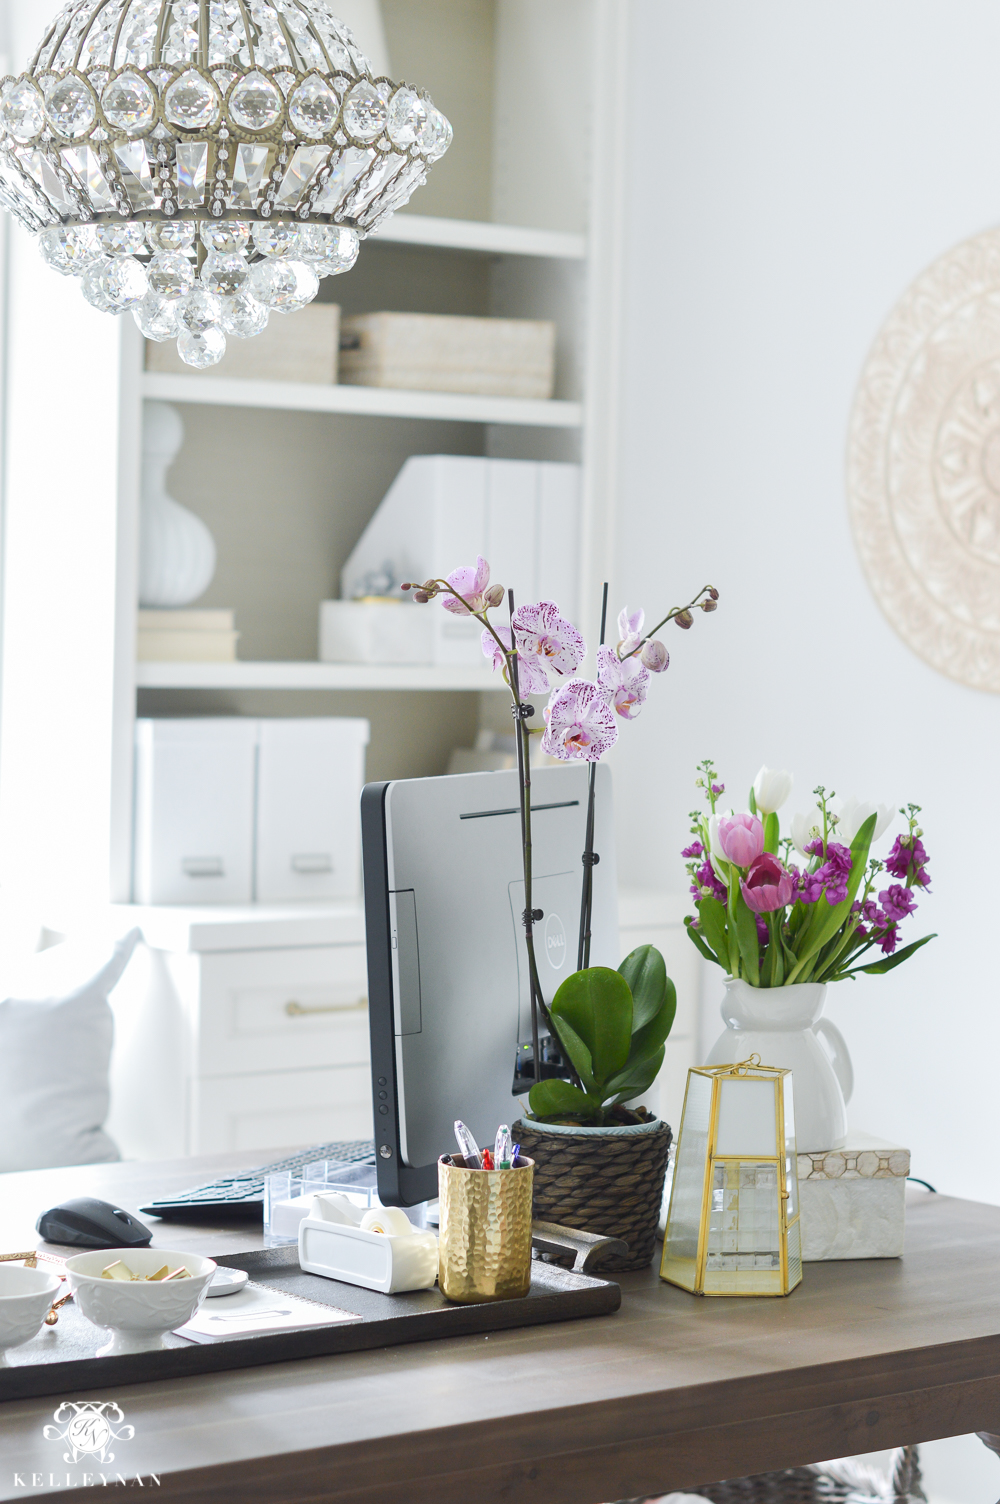 Shades of Summer Home Tour with Neutrals and Naturals- pretty home office with purple orchid and flowers